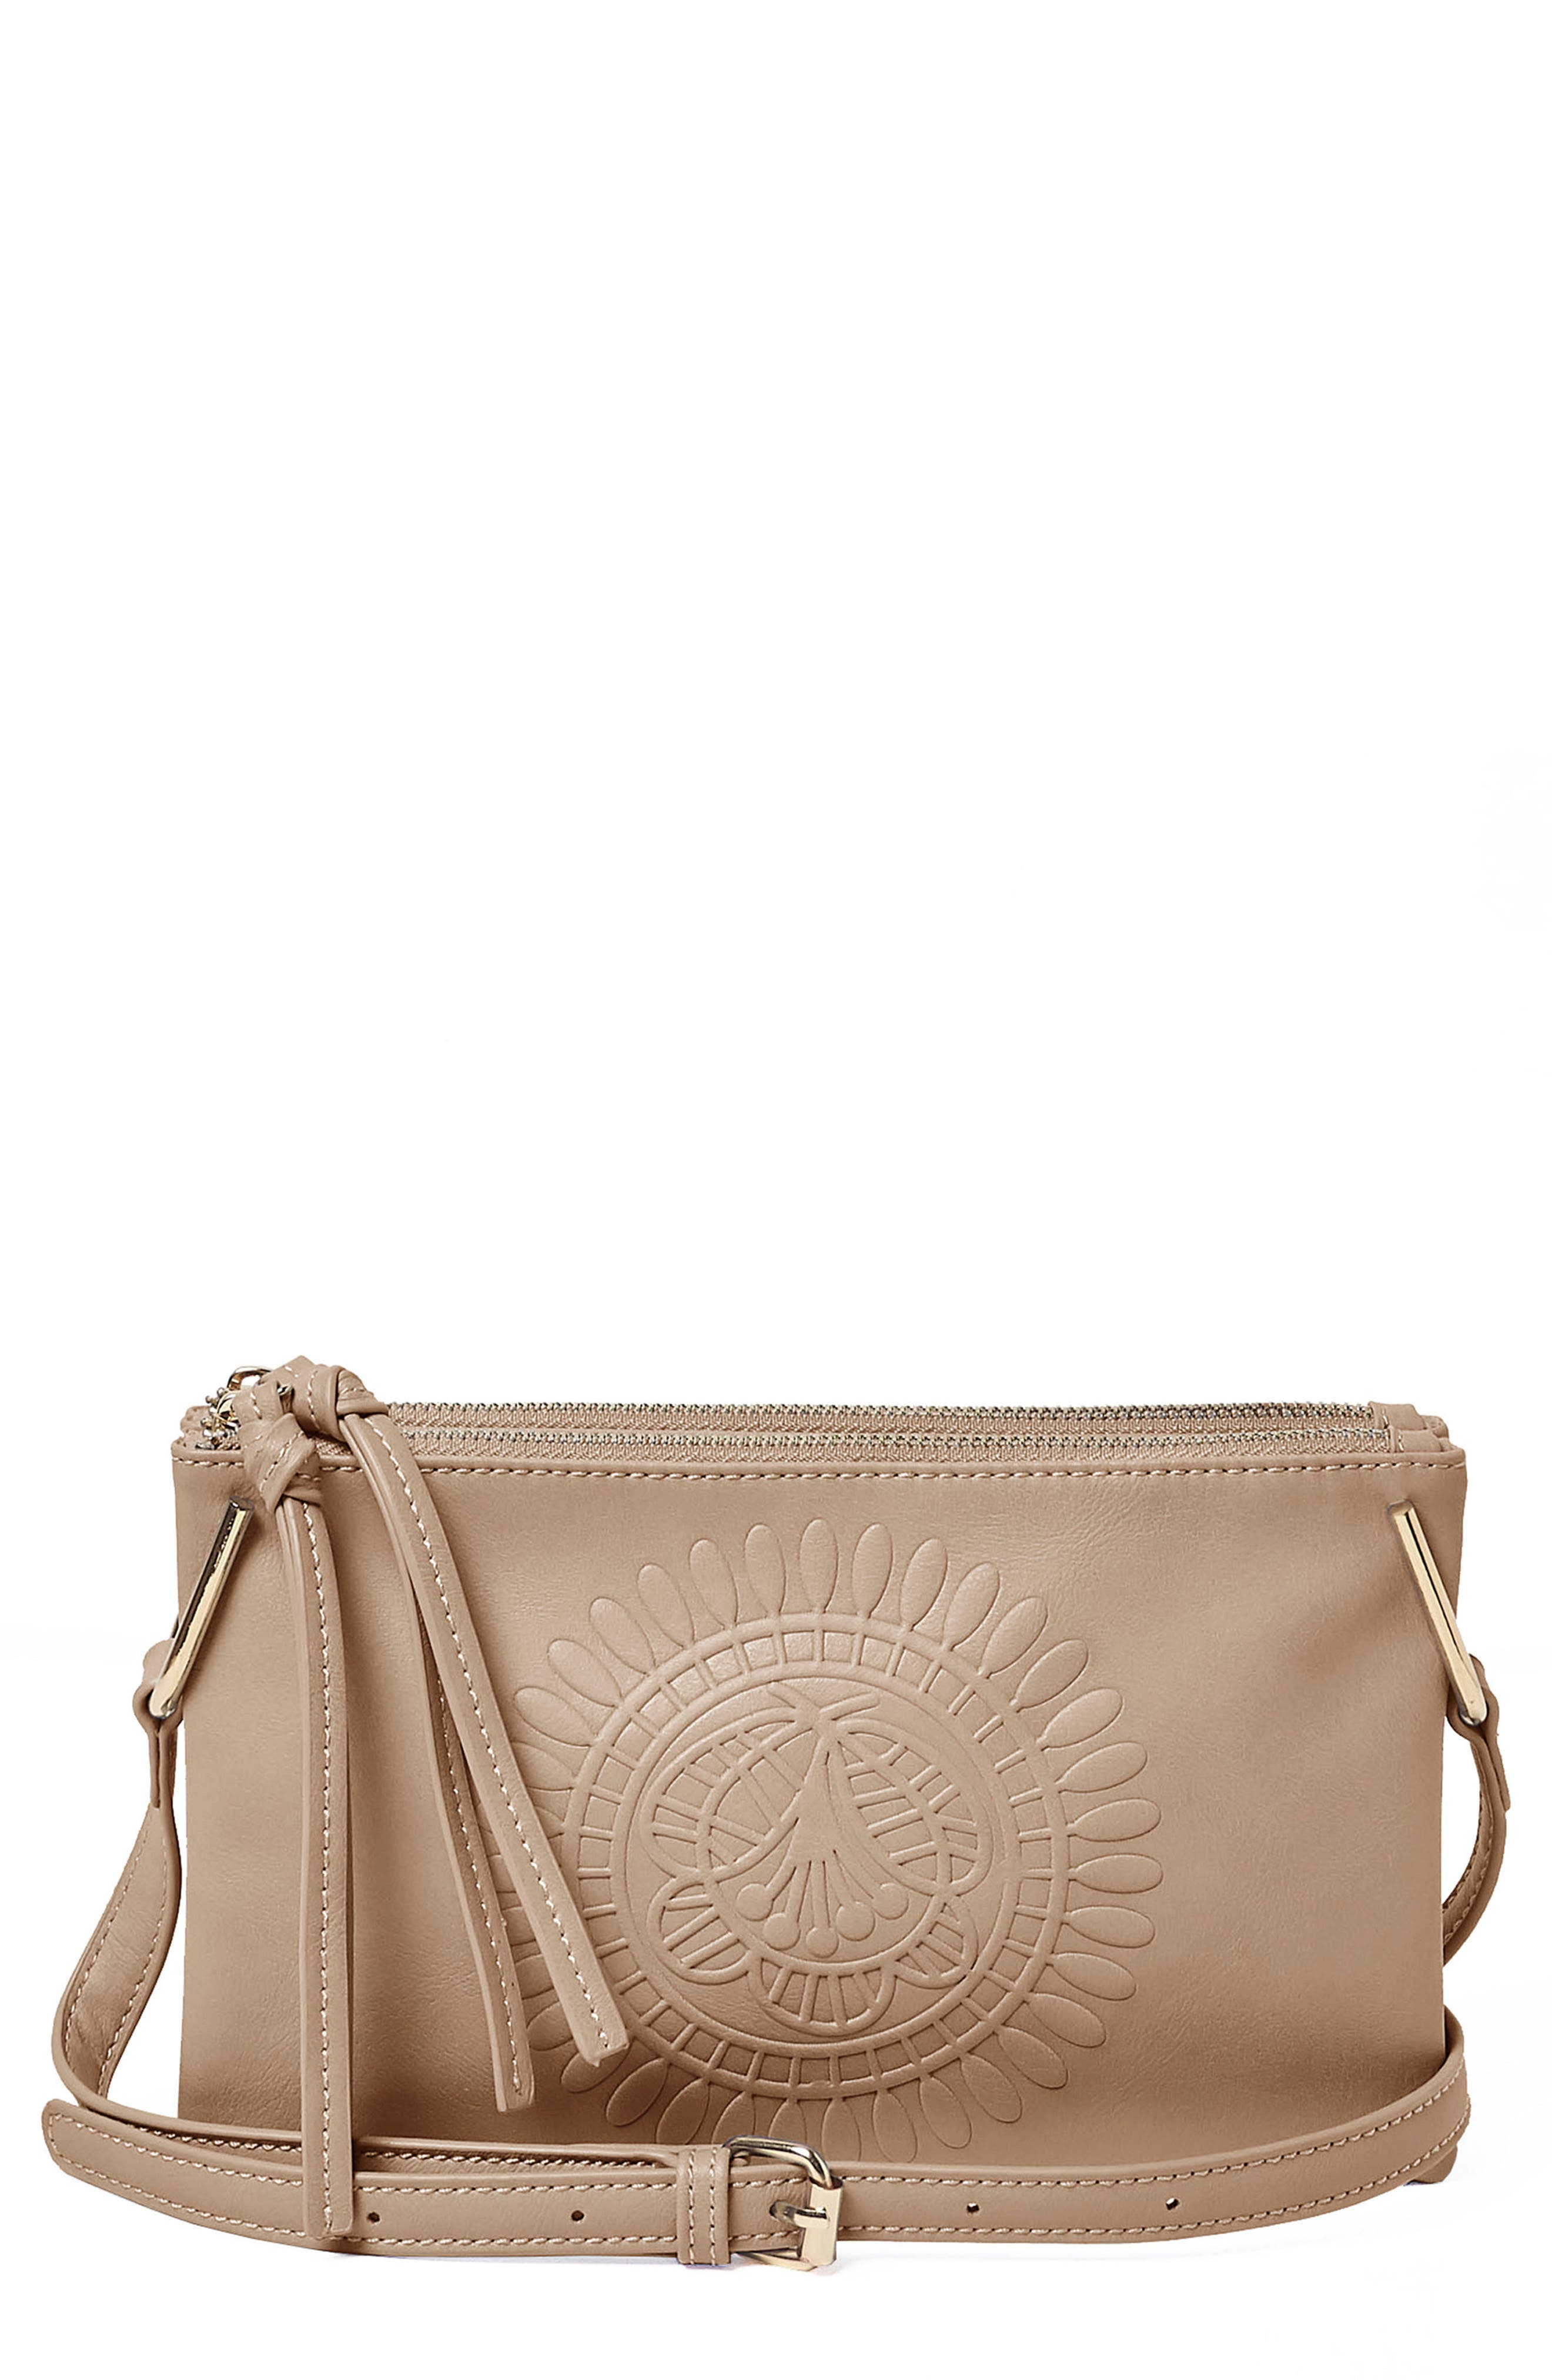 Urban Originals FLOWER VEGAN LEATHER CROSSBODY BAG - BEIGE